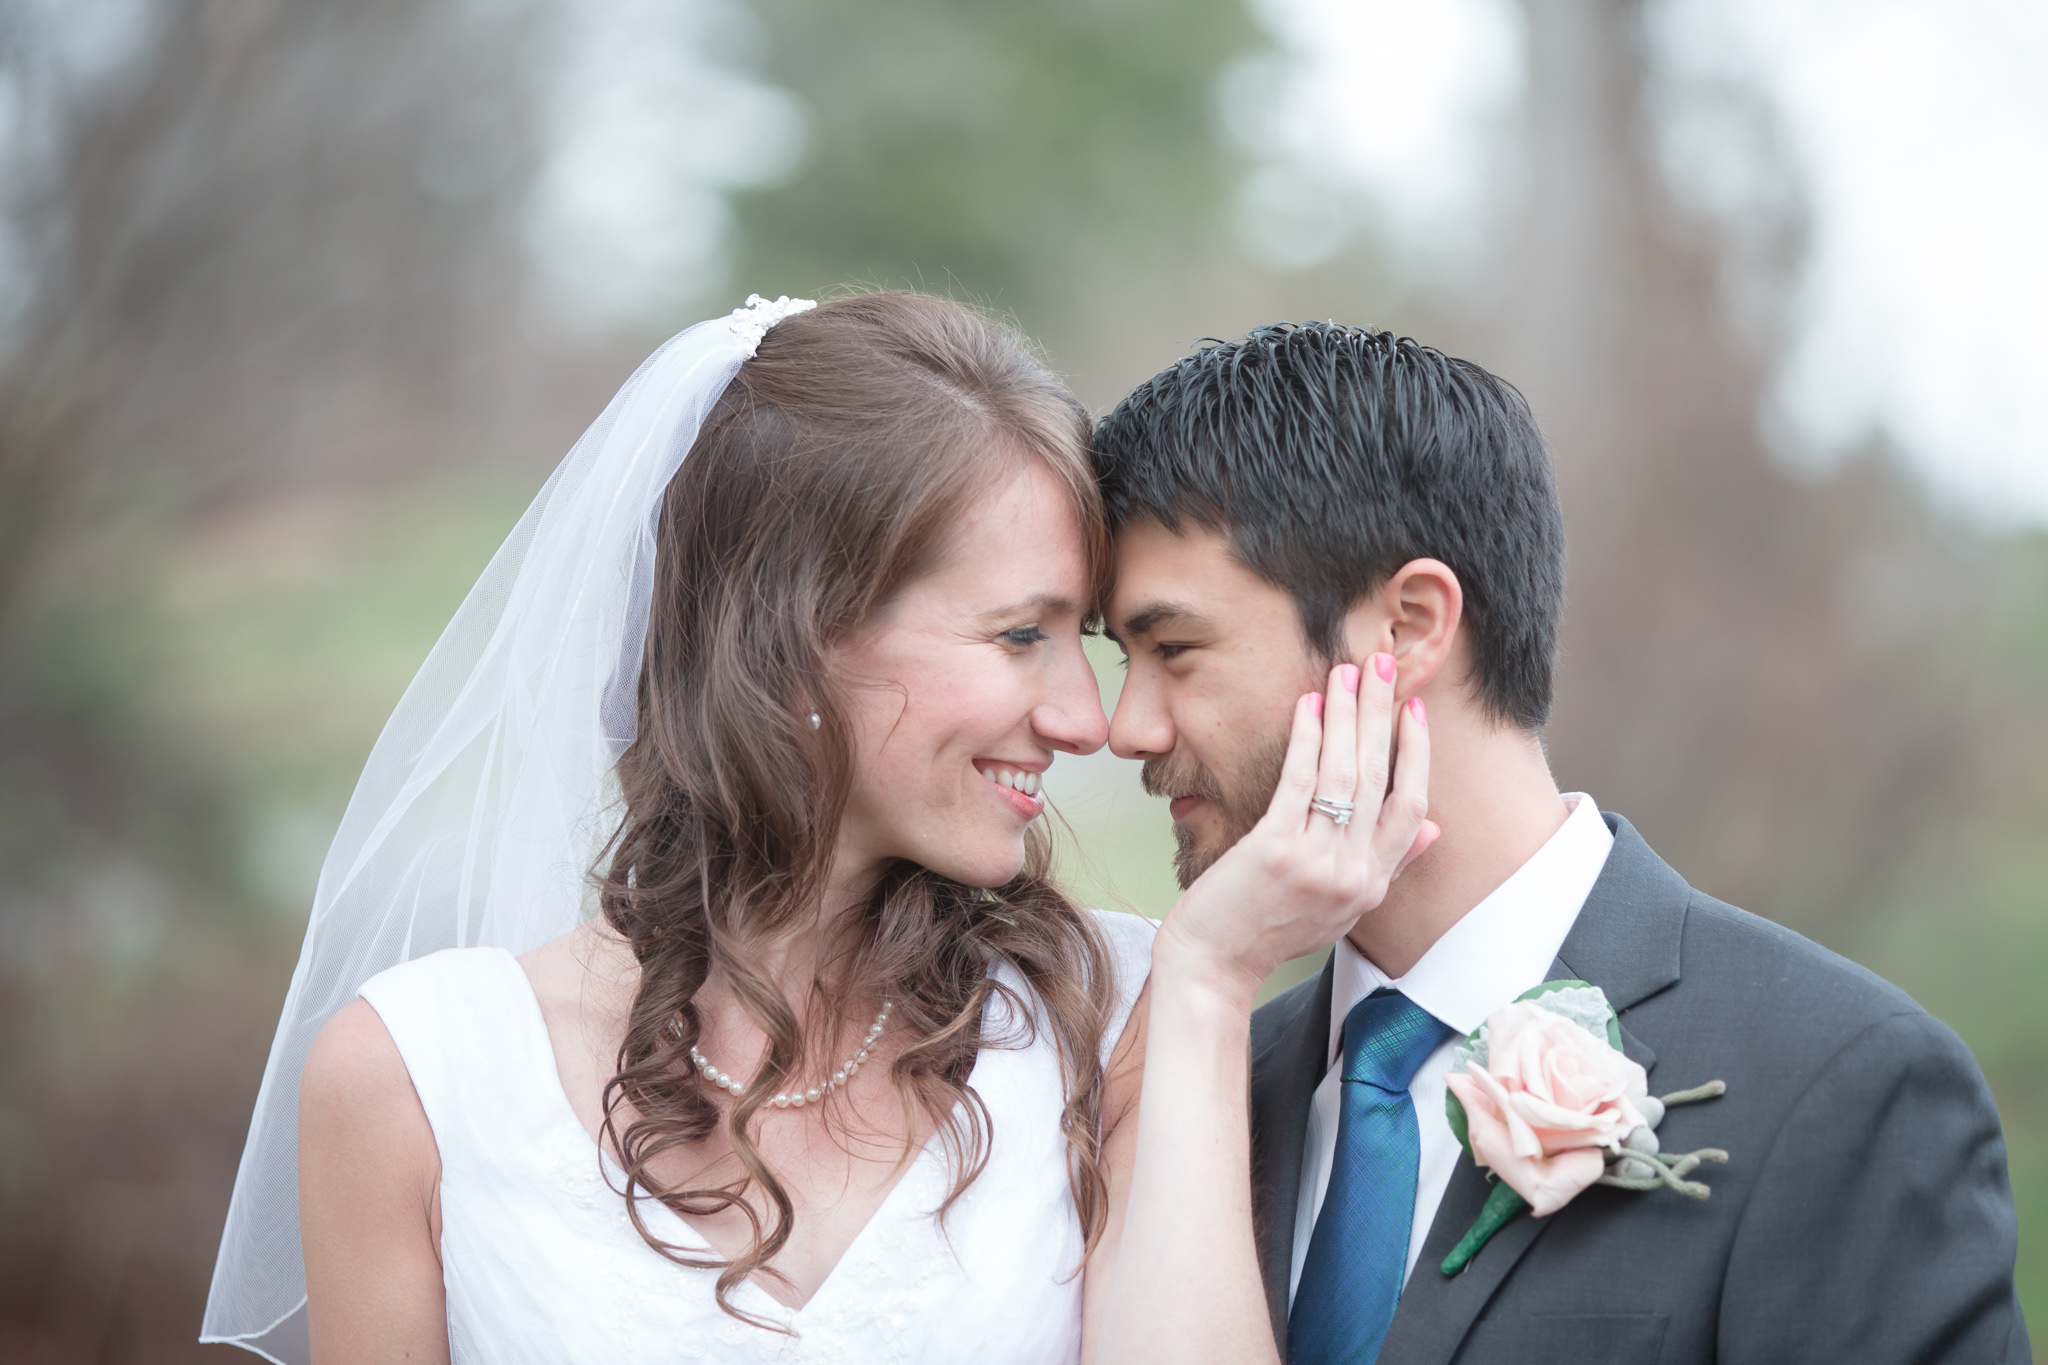 My last wedding of the year! Emily and Peter's wedding was stunning! I'm loving this little moment!